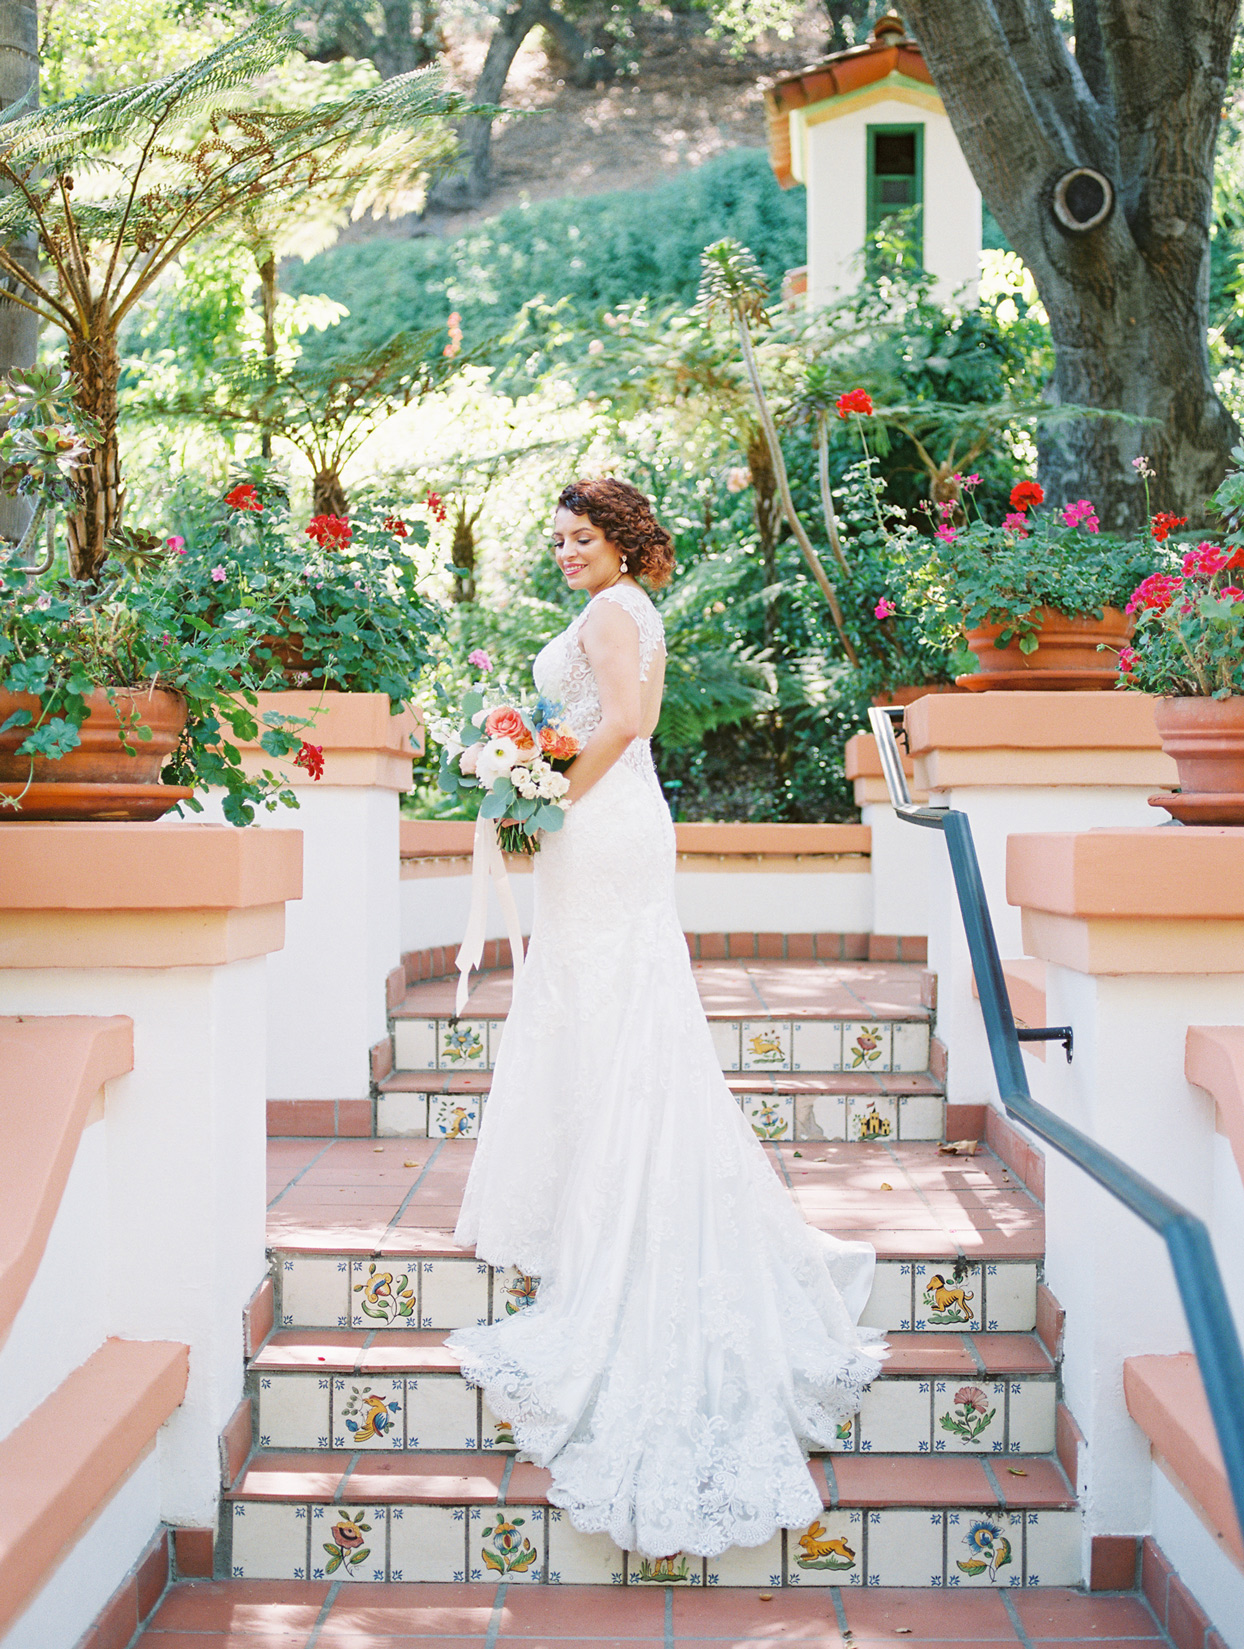 bride wearing lace train wedding dress on tiled stairway outside